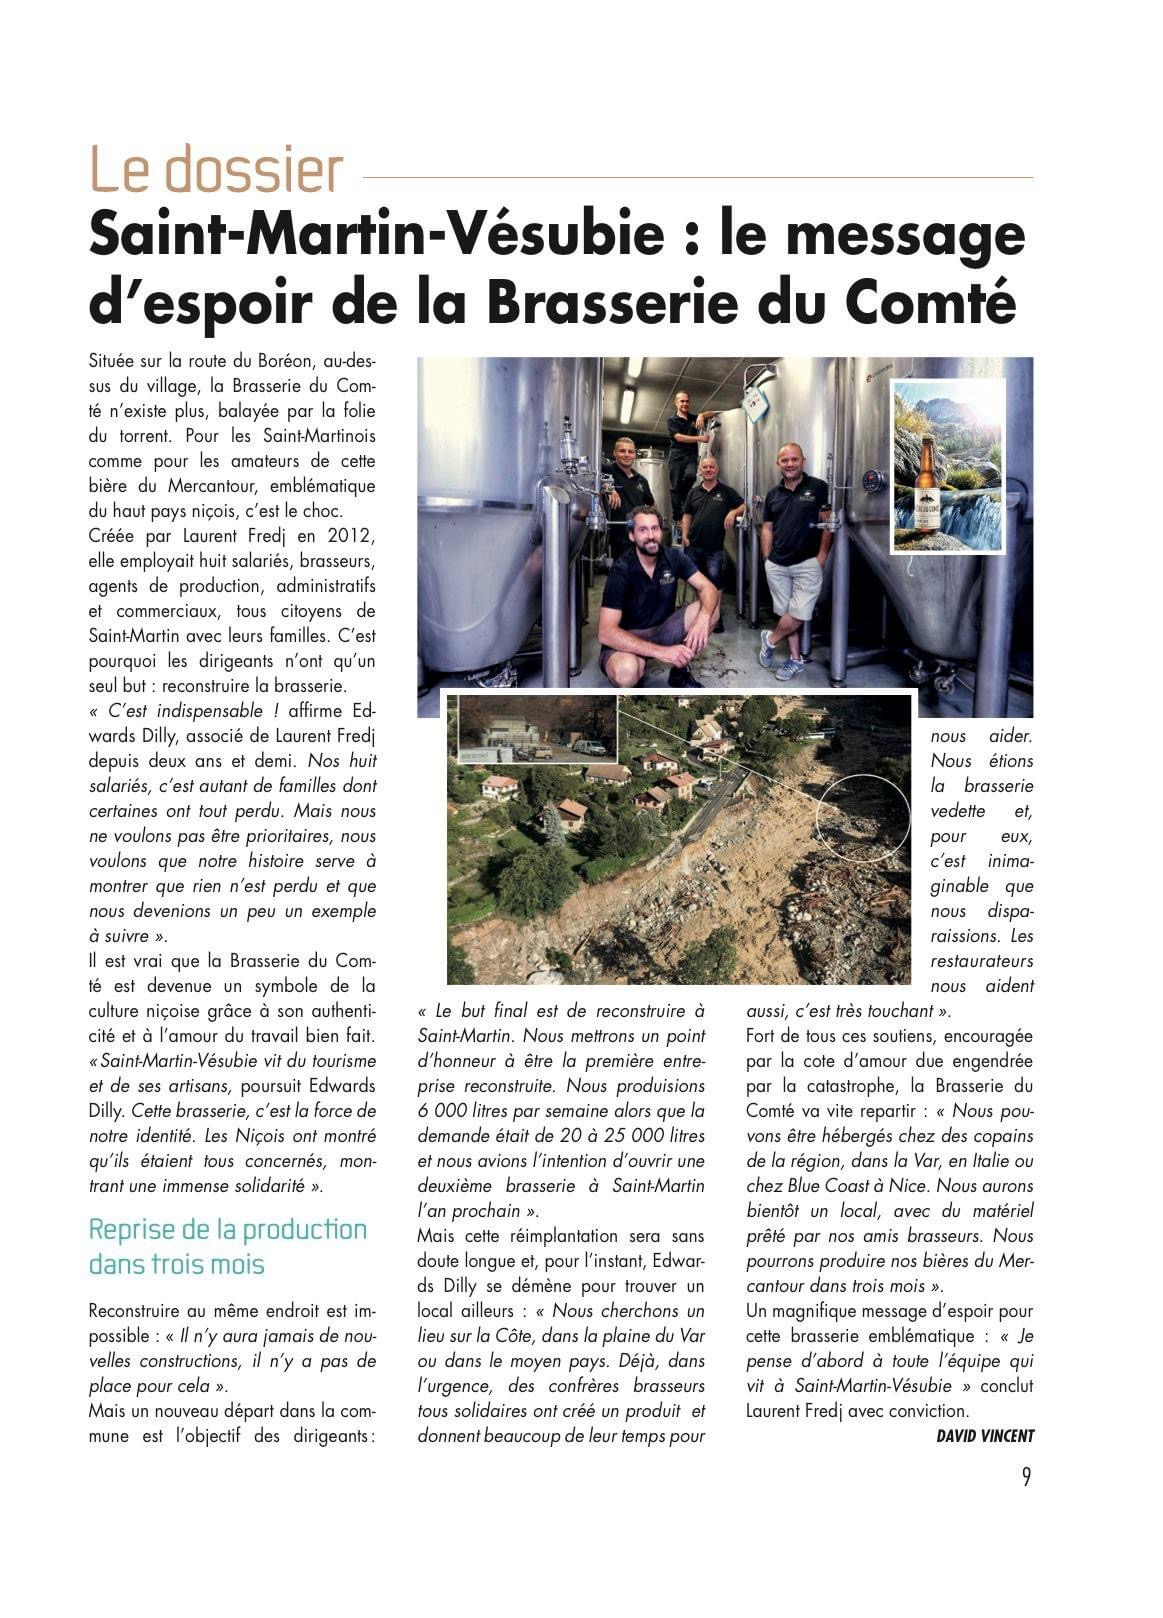 Article  » Le Message d'espoir de la Brasserie du Comté  » Vie Villages – Novembre 2020